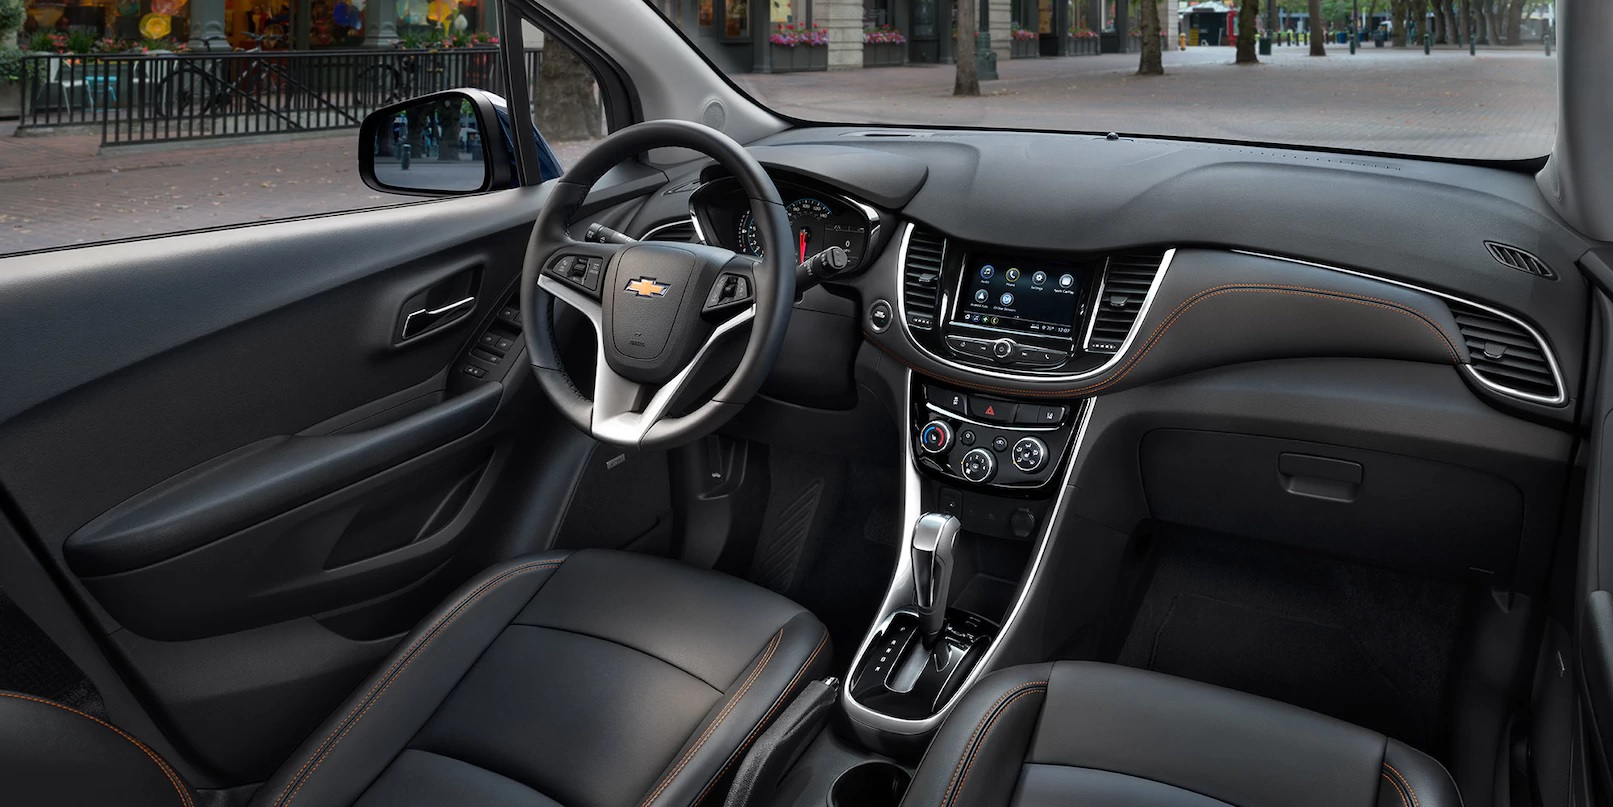 2018 Chevrolet Trax Financing in Sylvania, OH - Dave White ...